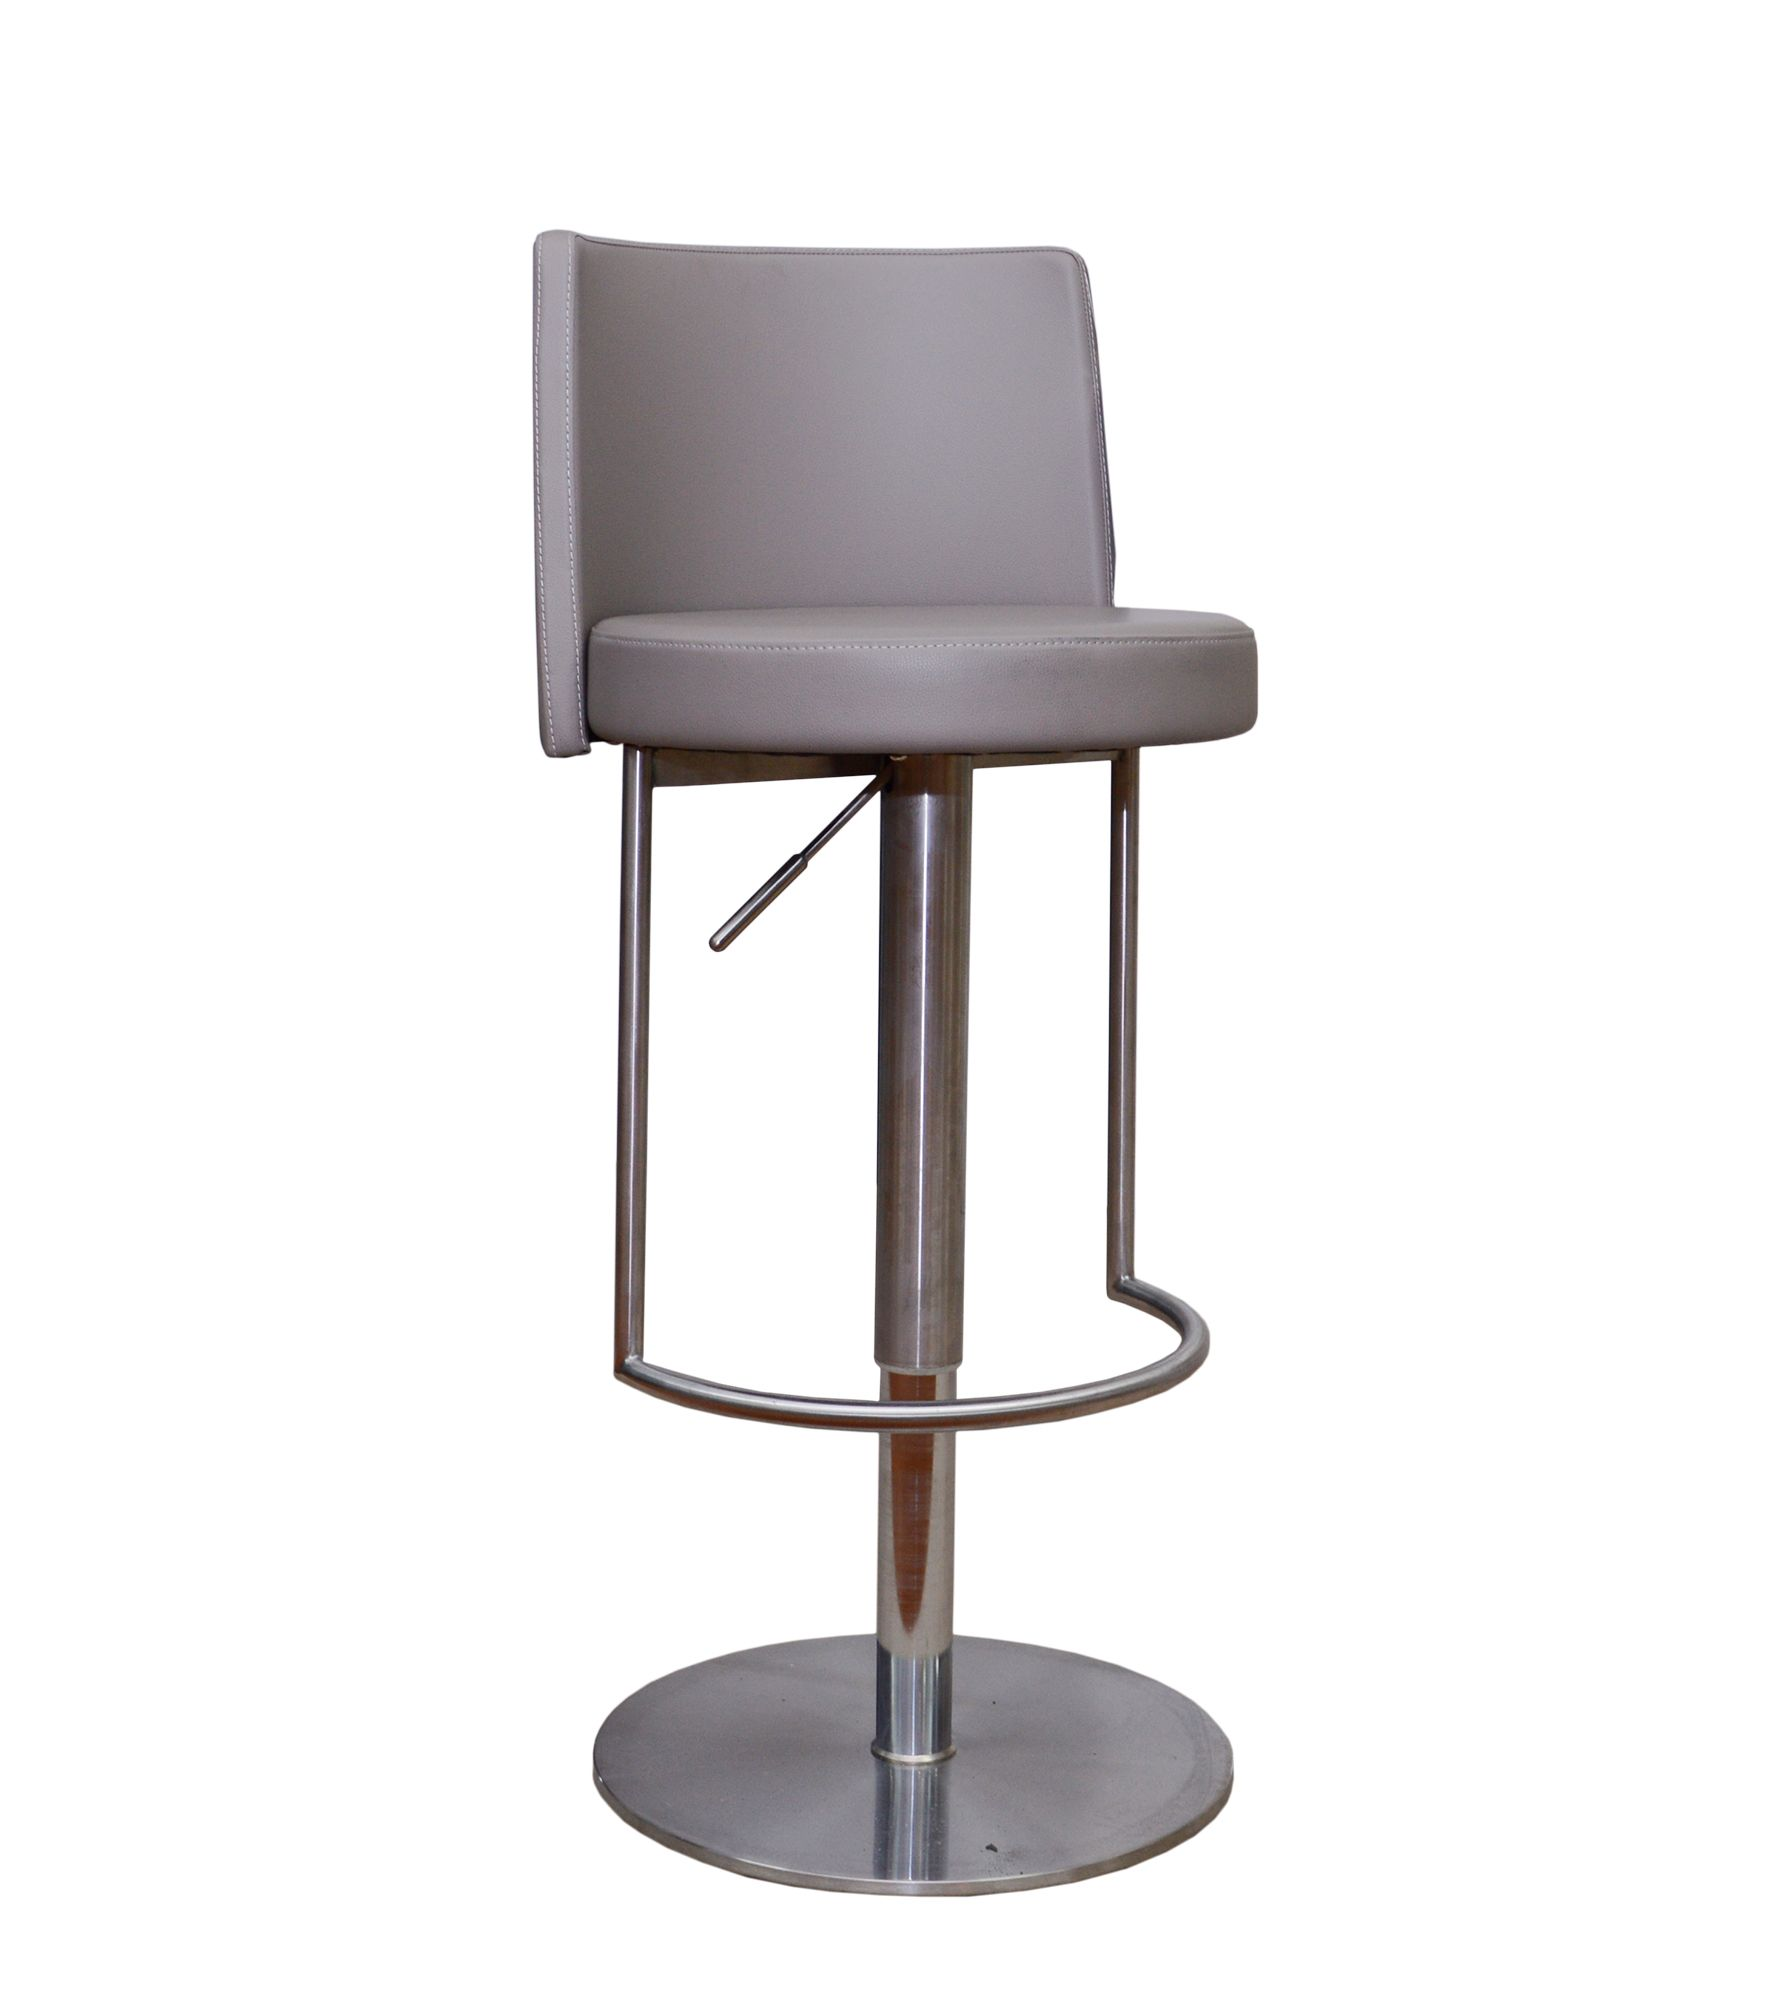 Monza High Bar Stool Faux Leather Taupe